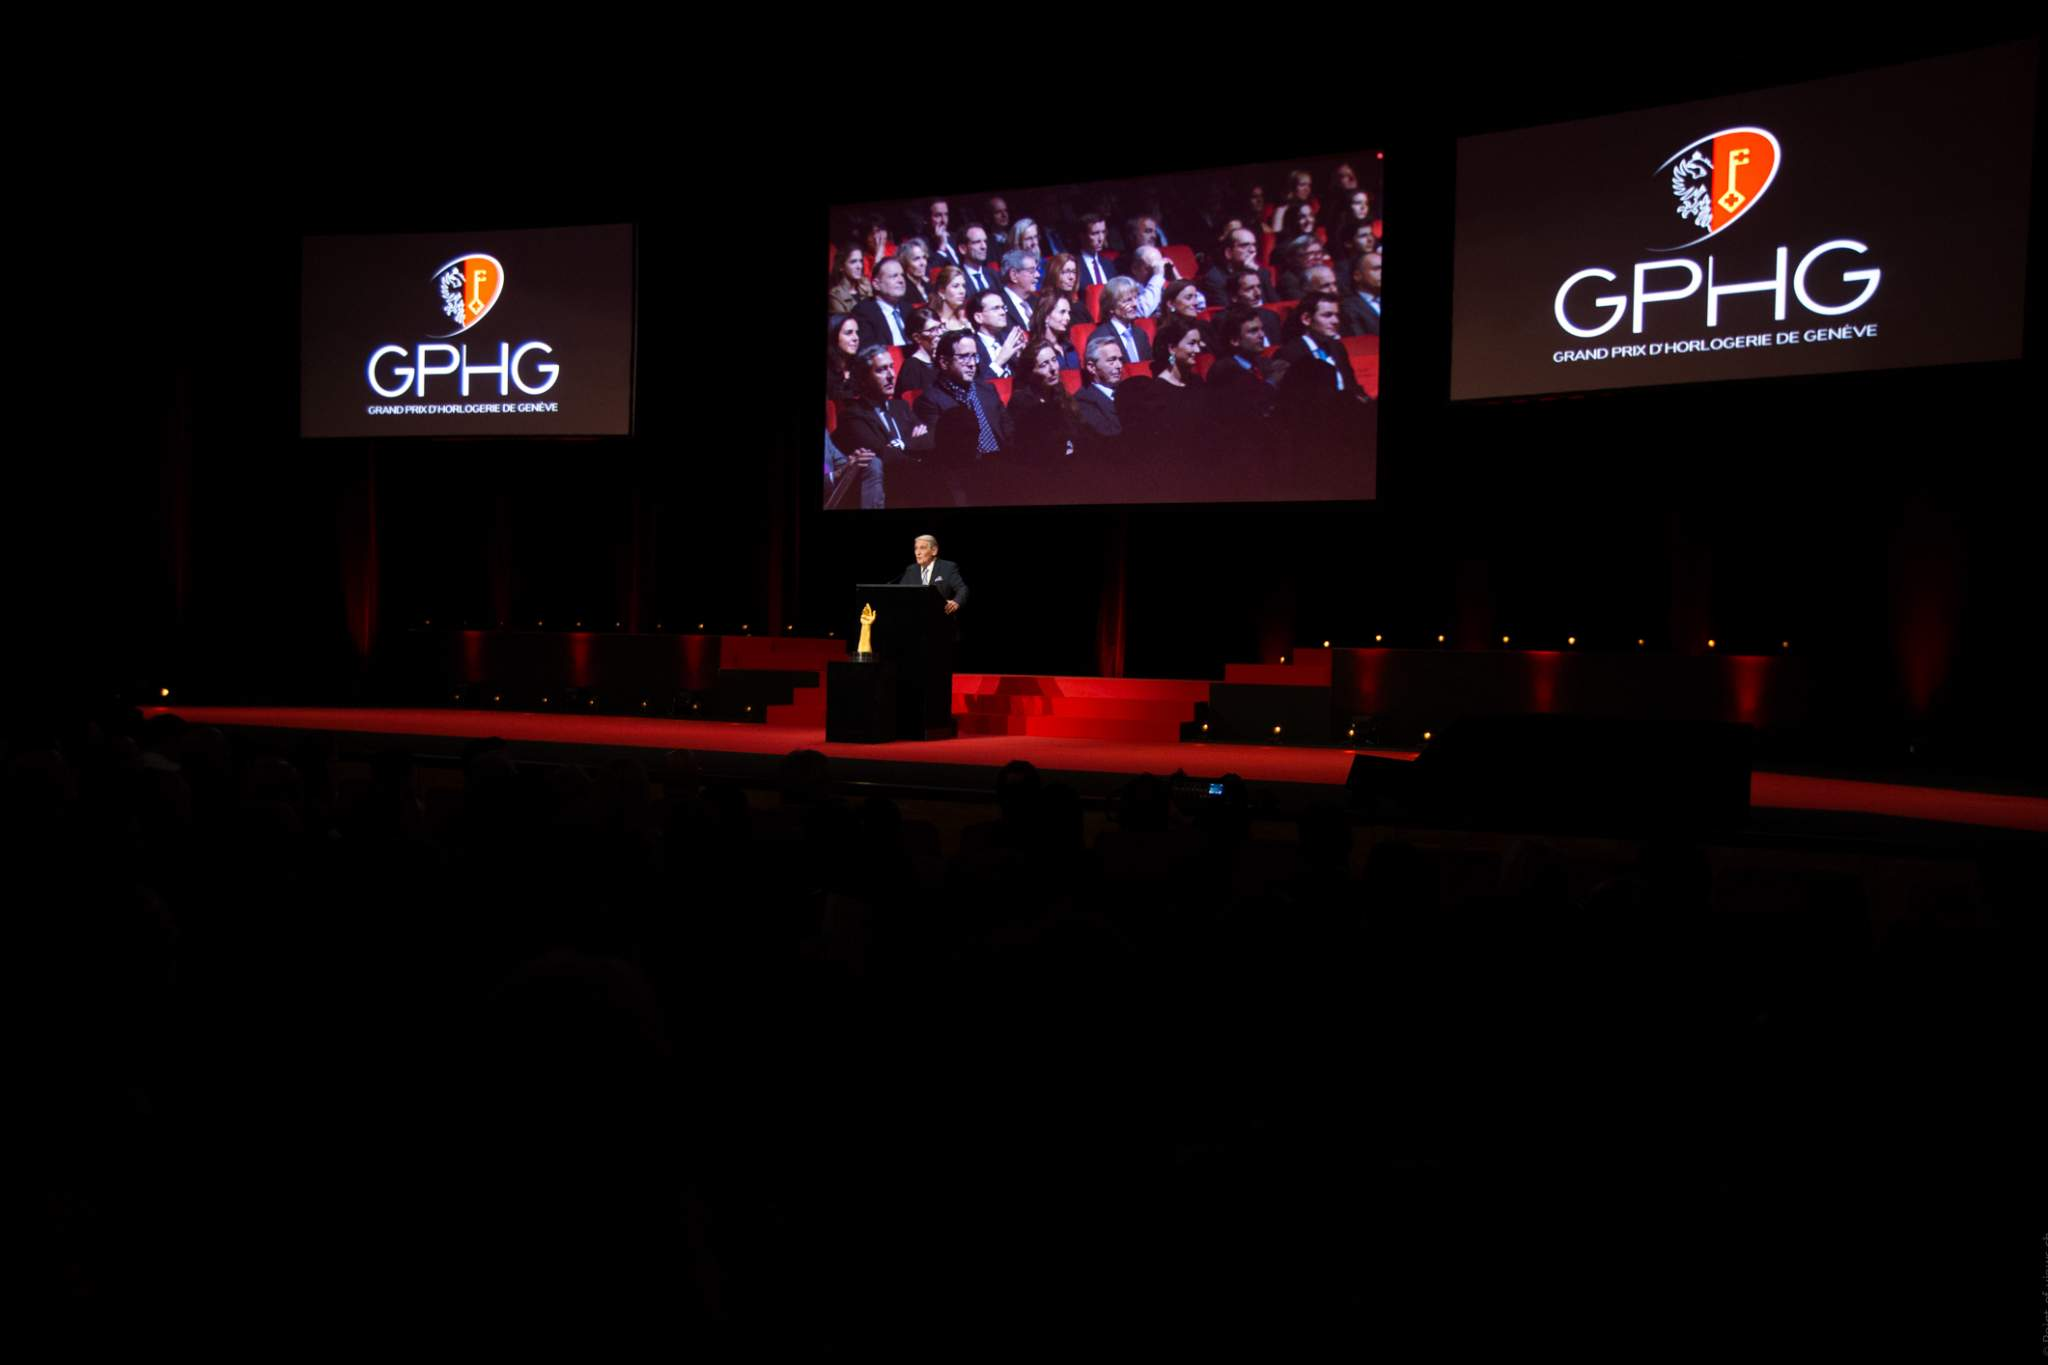 Carlo Lamprecht (President of the Foundation of the GPHG) at the prize-giving ceremony of the GPHG 16